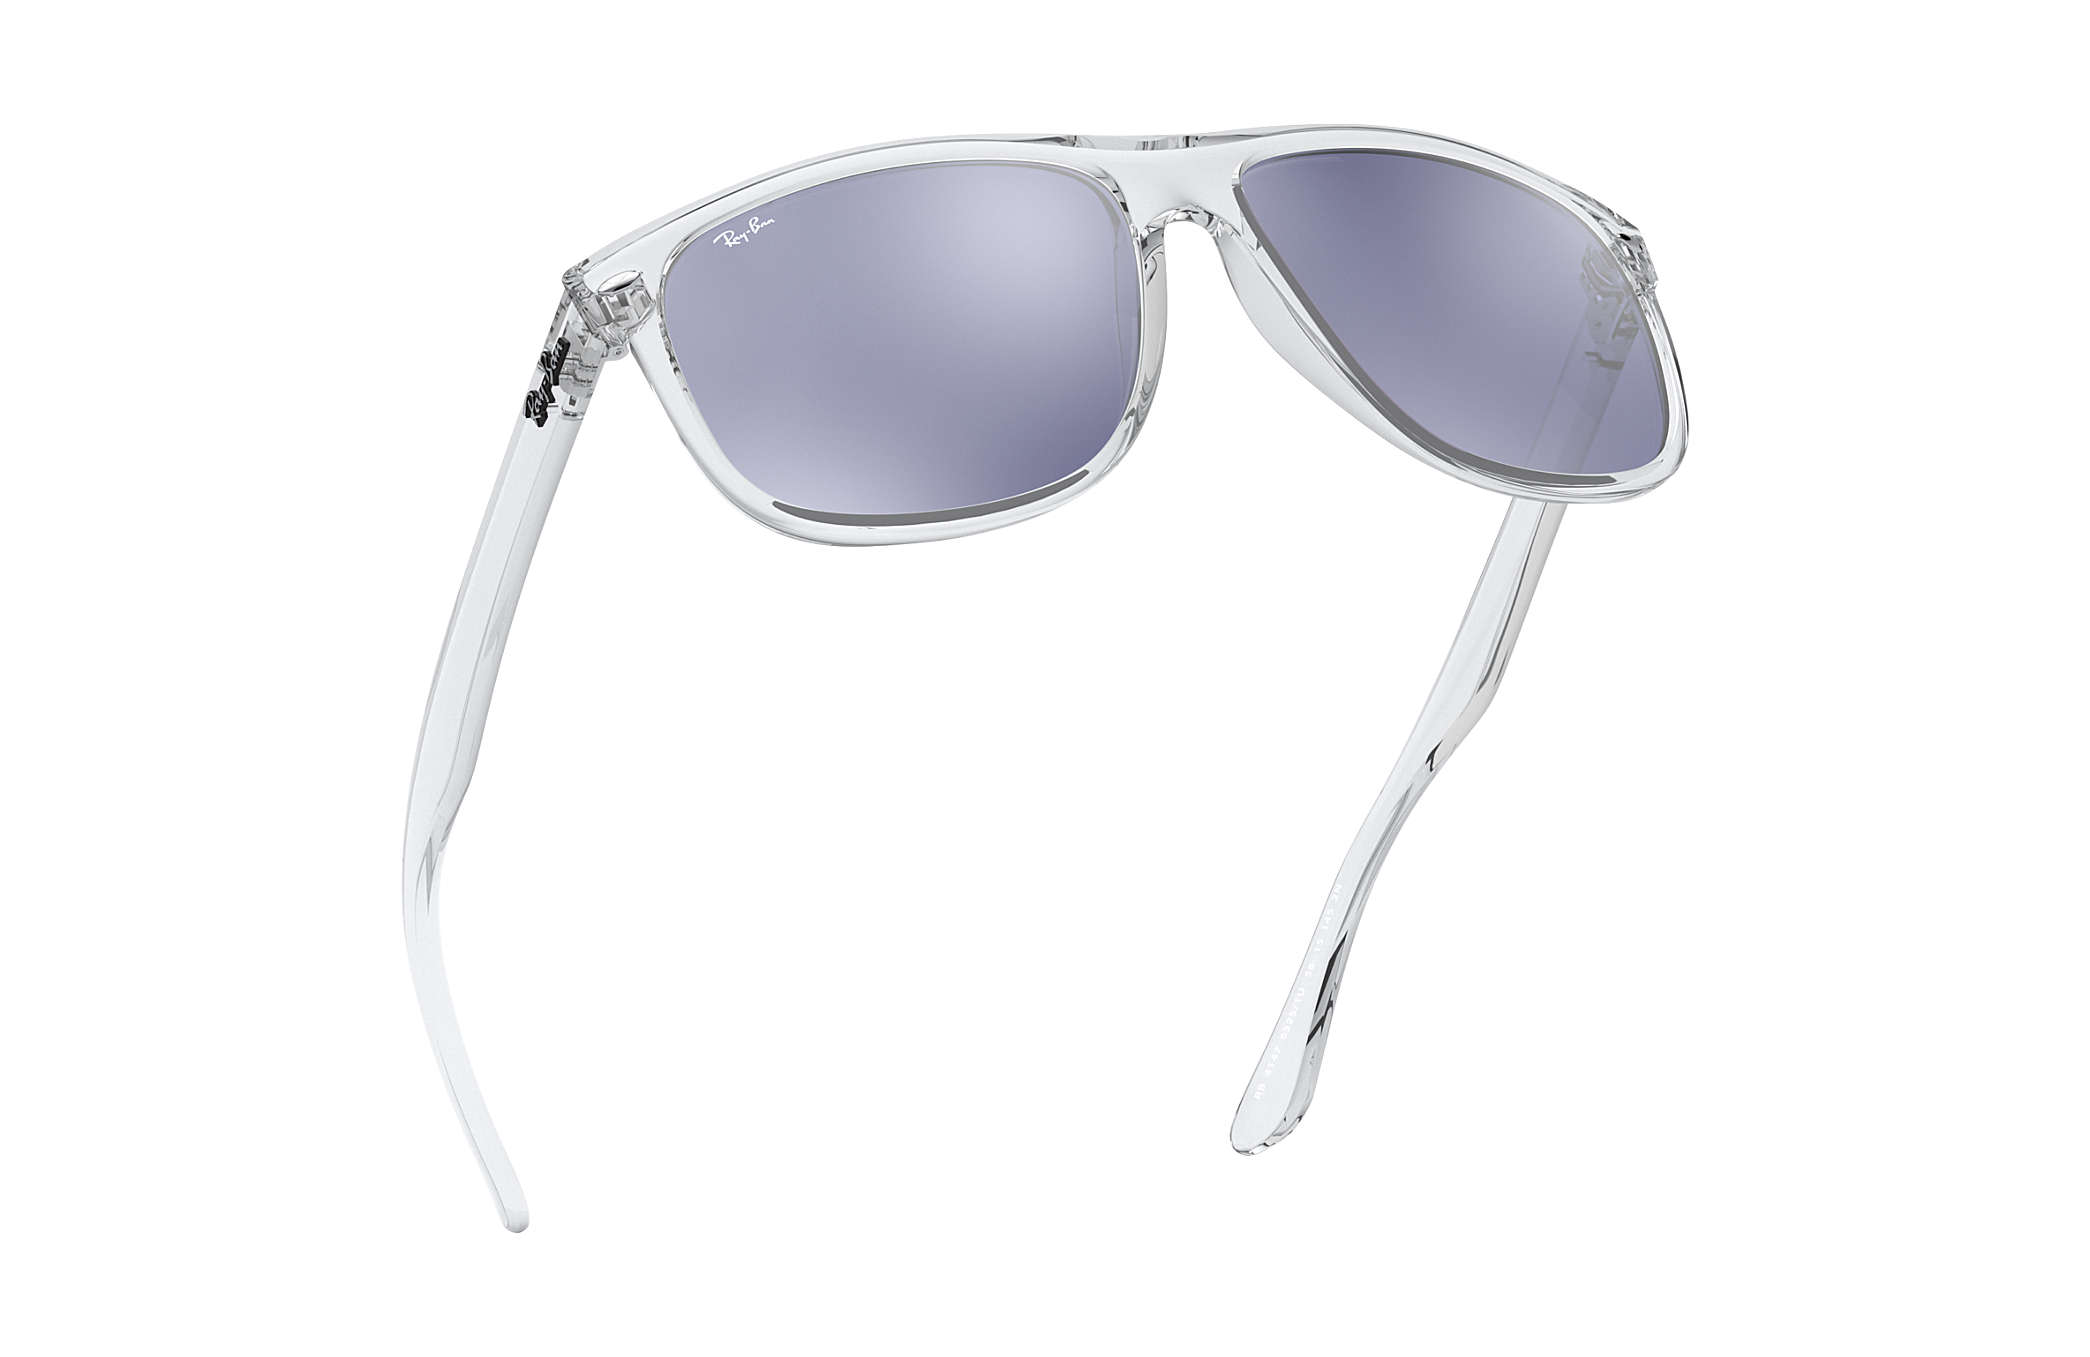 a9febe0596ffa Ray-Ban RB4147 Transparent - Injected - Violet Lenses ...